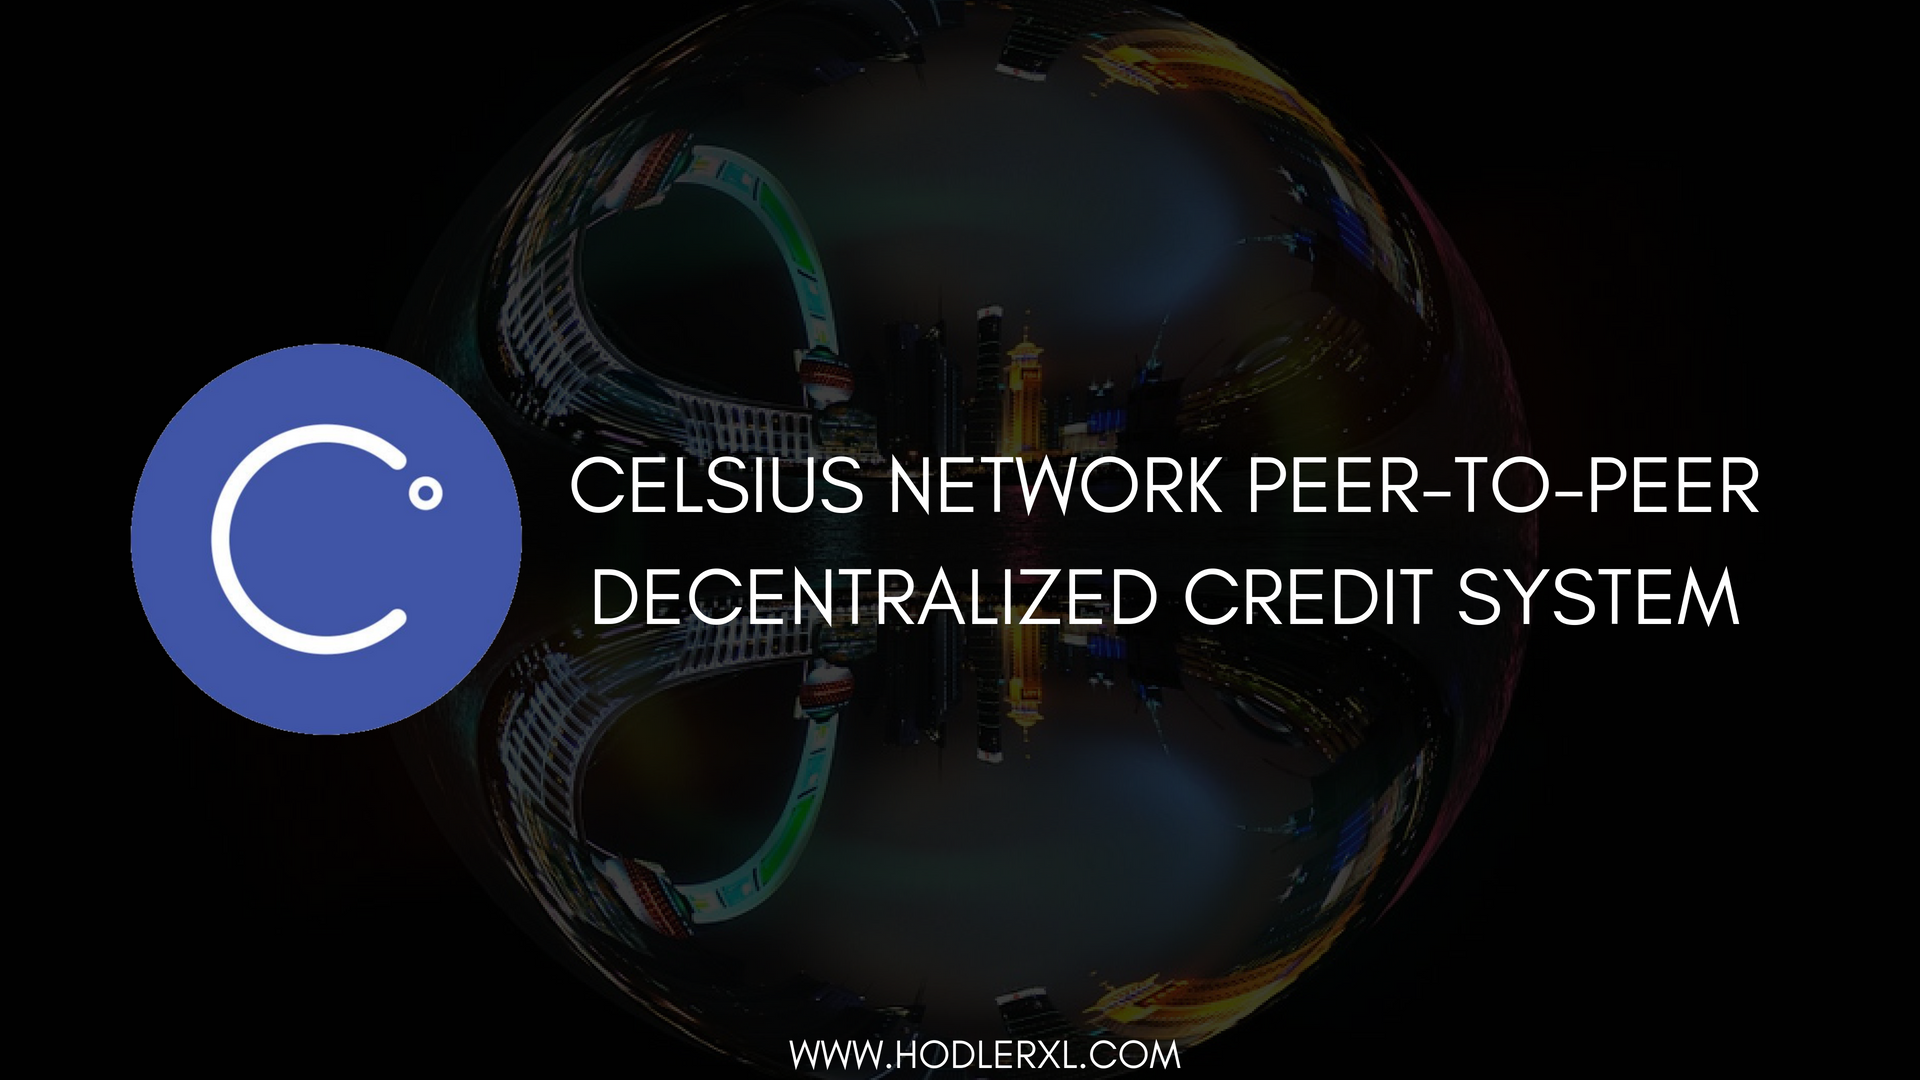 Celsius Network Peer-To-Peer Decentralized Credit System